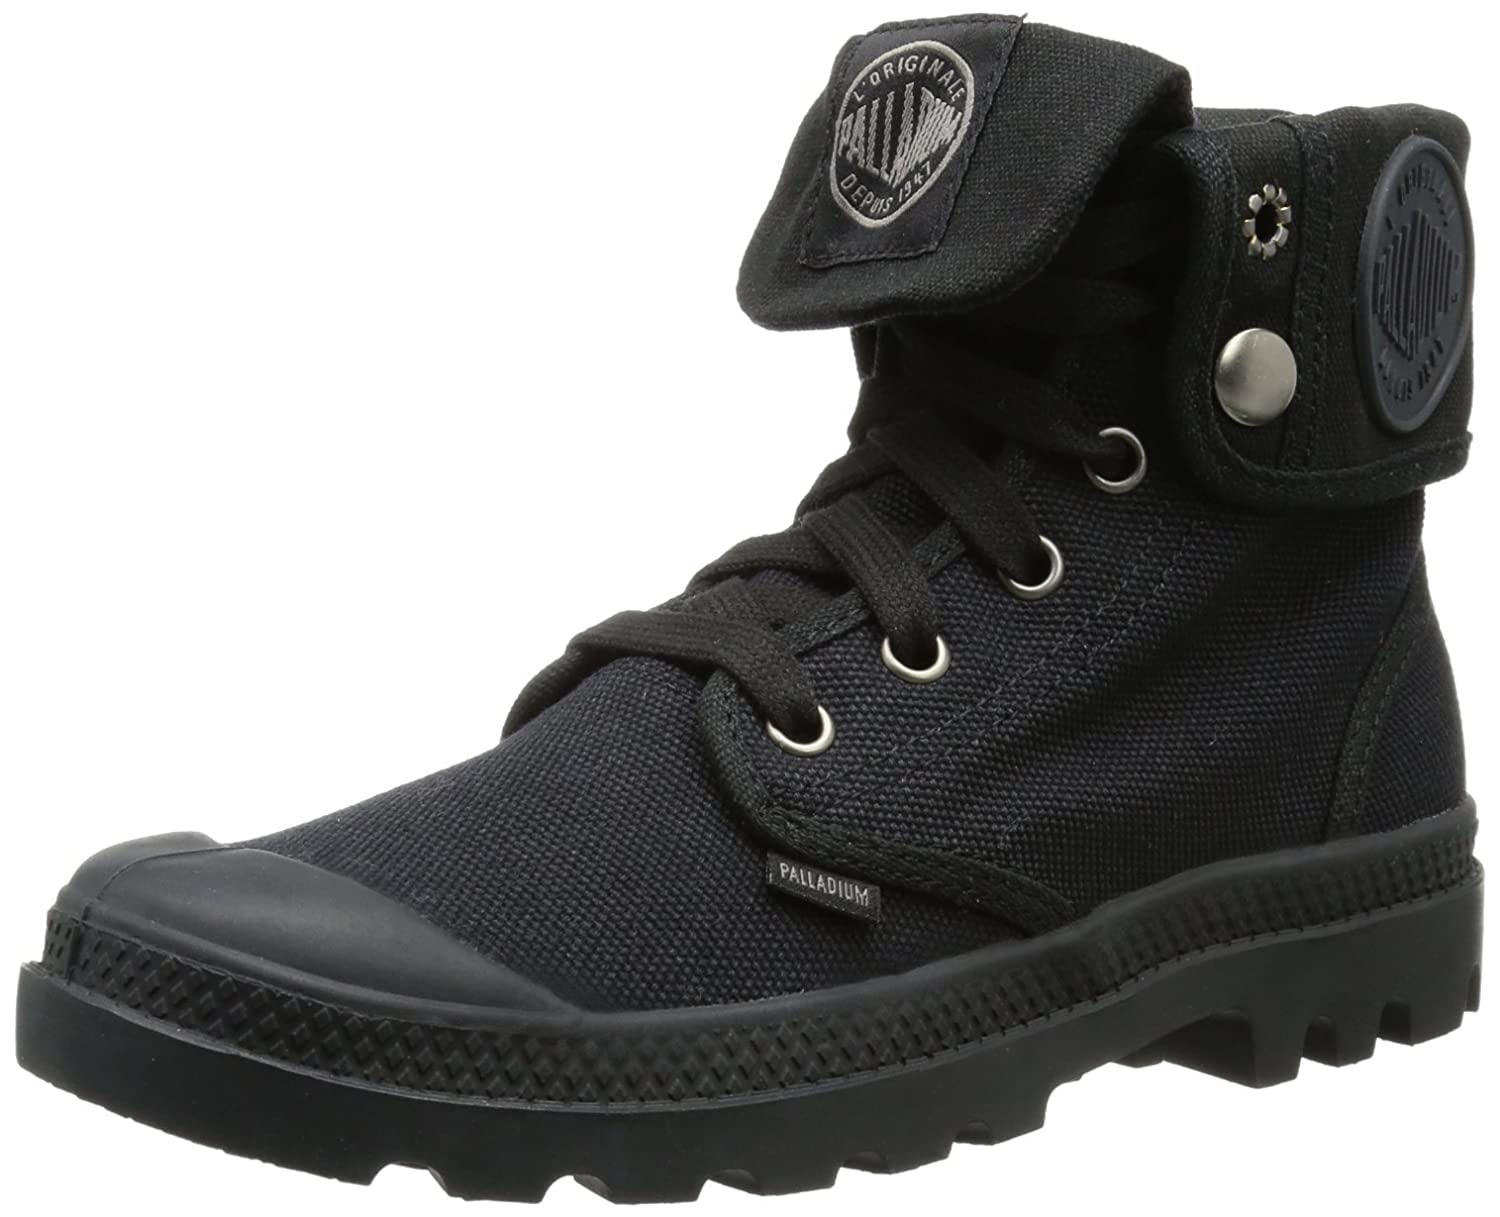 Palladium Pallabrouse Baggy, Damen Desert Boots, Schwarz (Black/Metal), 35.5 EU (3 Damen UK)